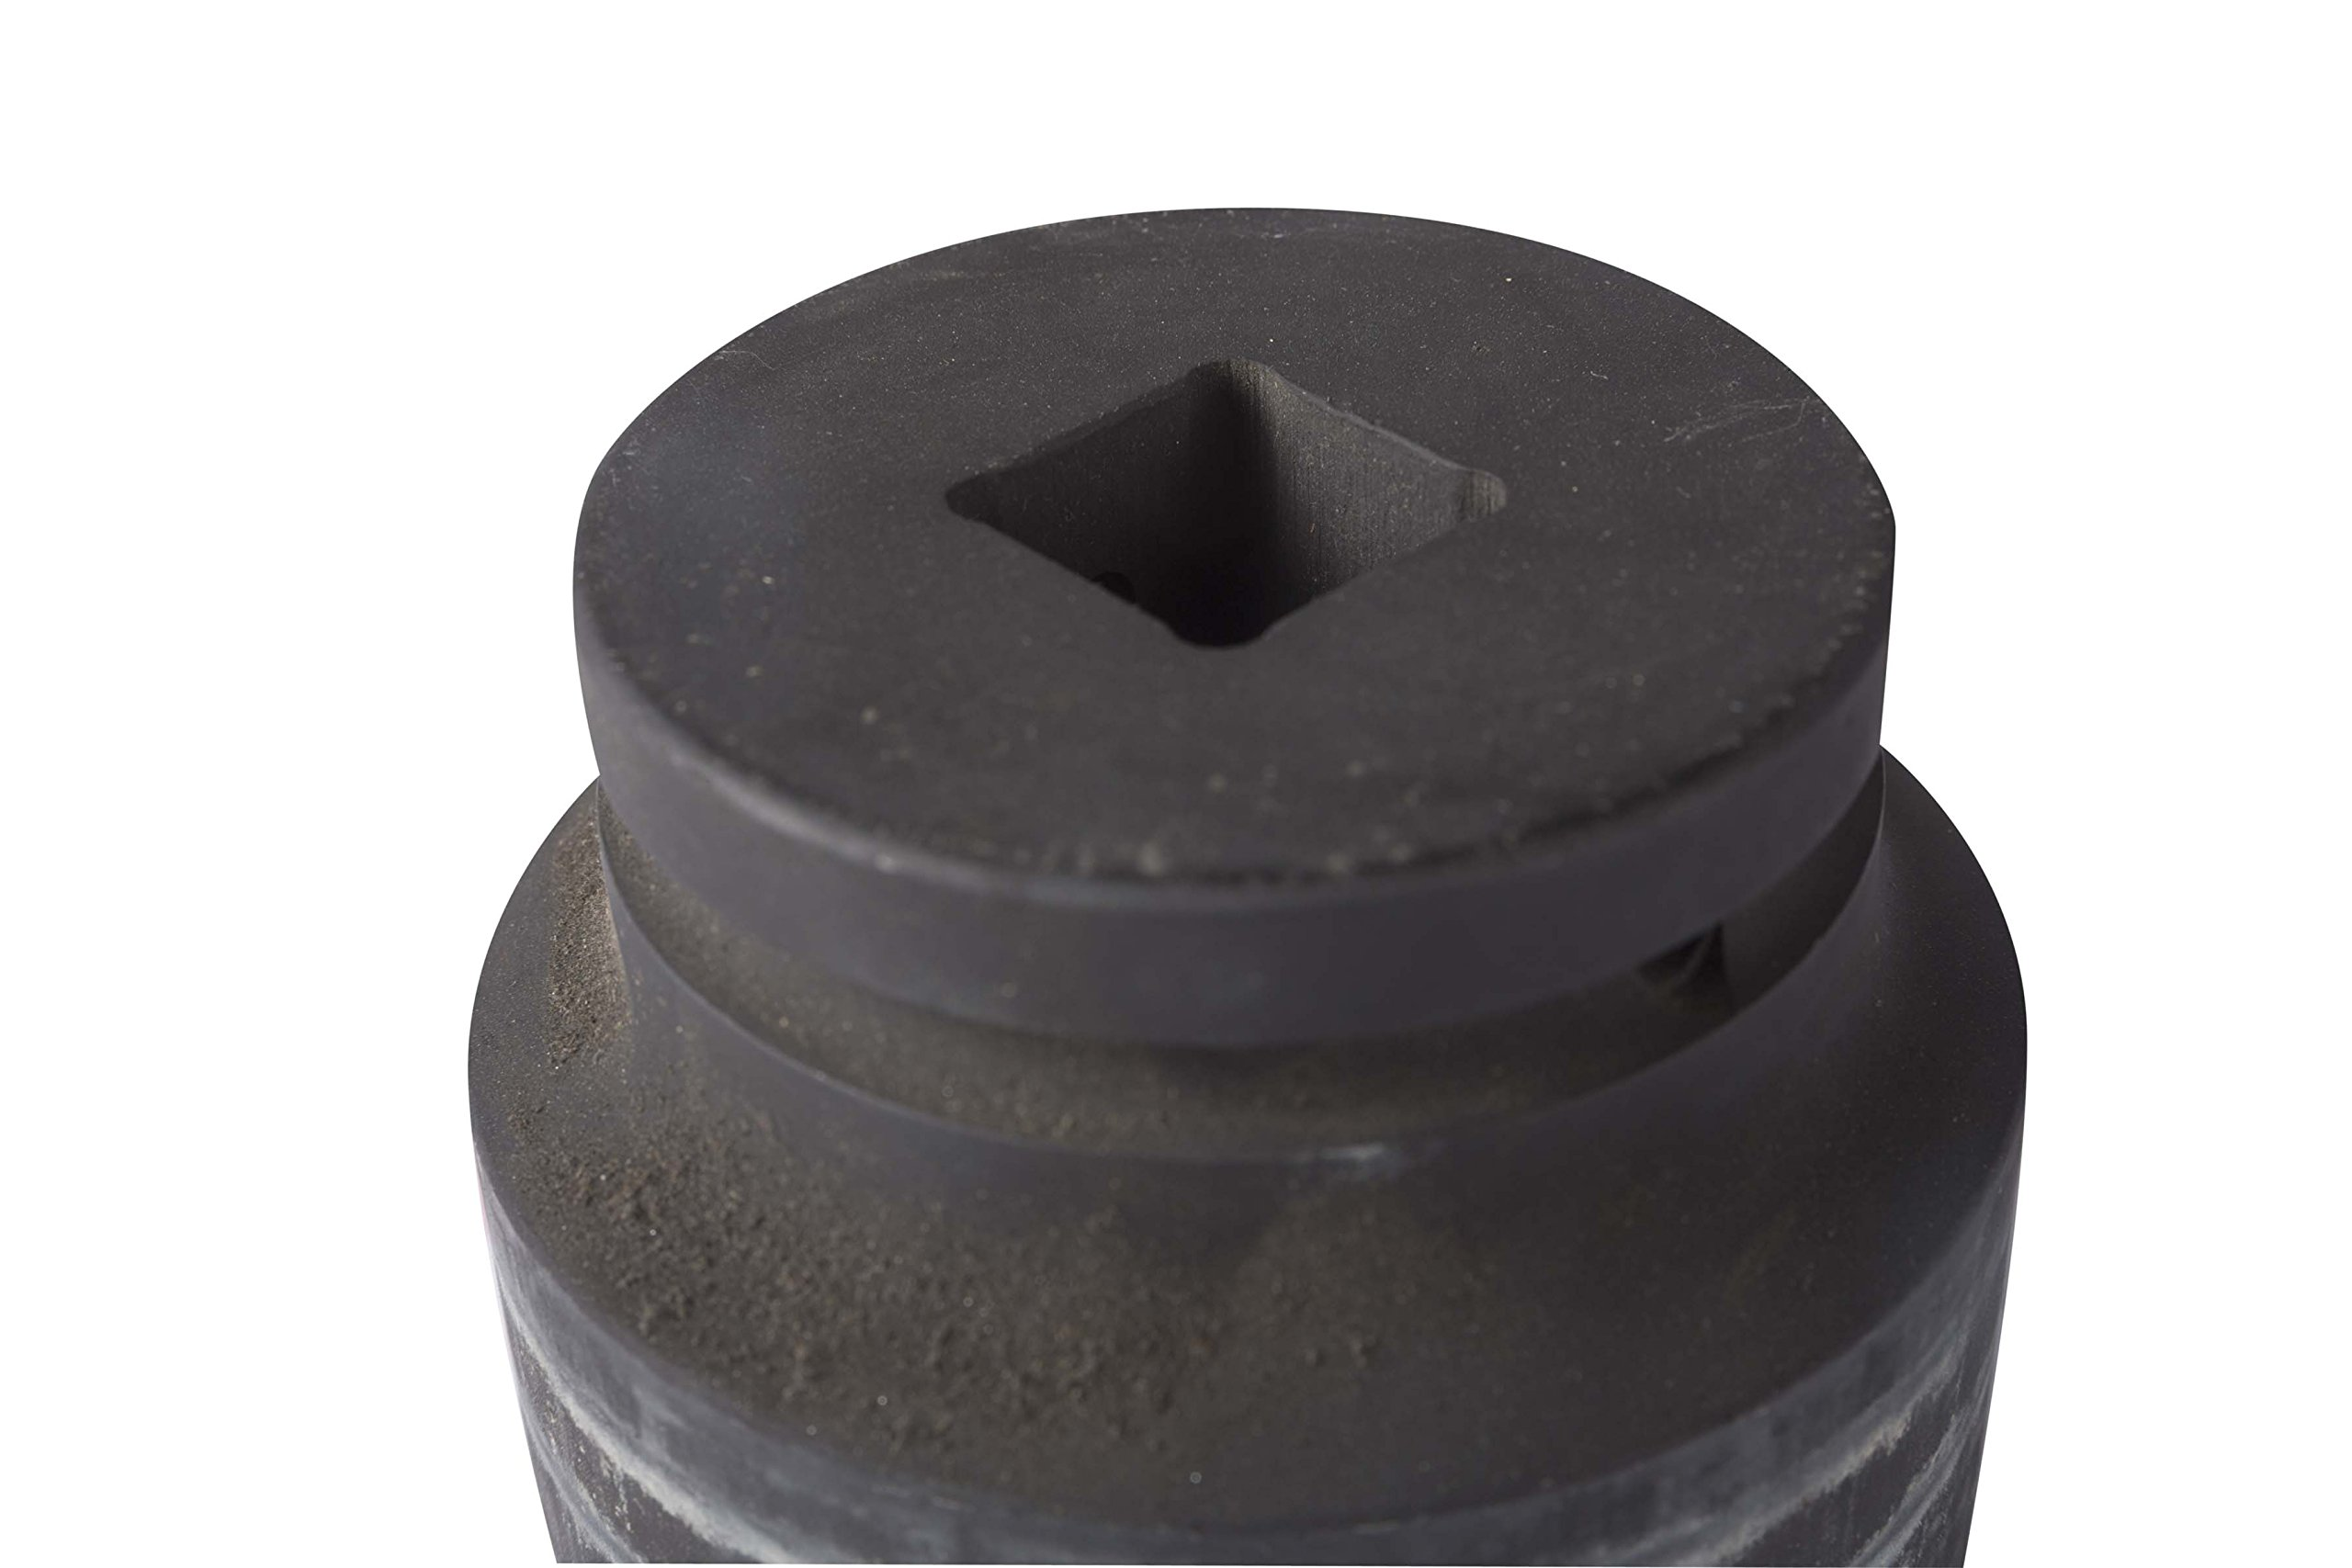 Sunox 5108D 1-Inch Drive 3-3/8-Inch Deep Impact Socket by Sunex (Image #4)